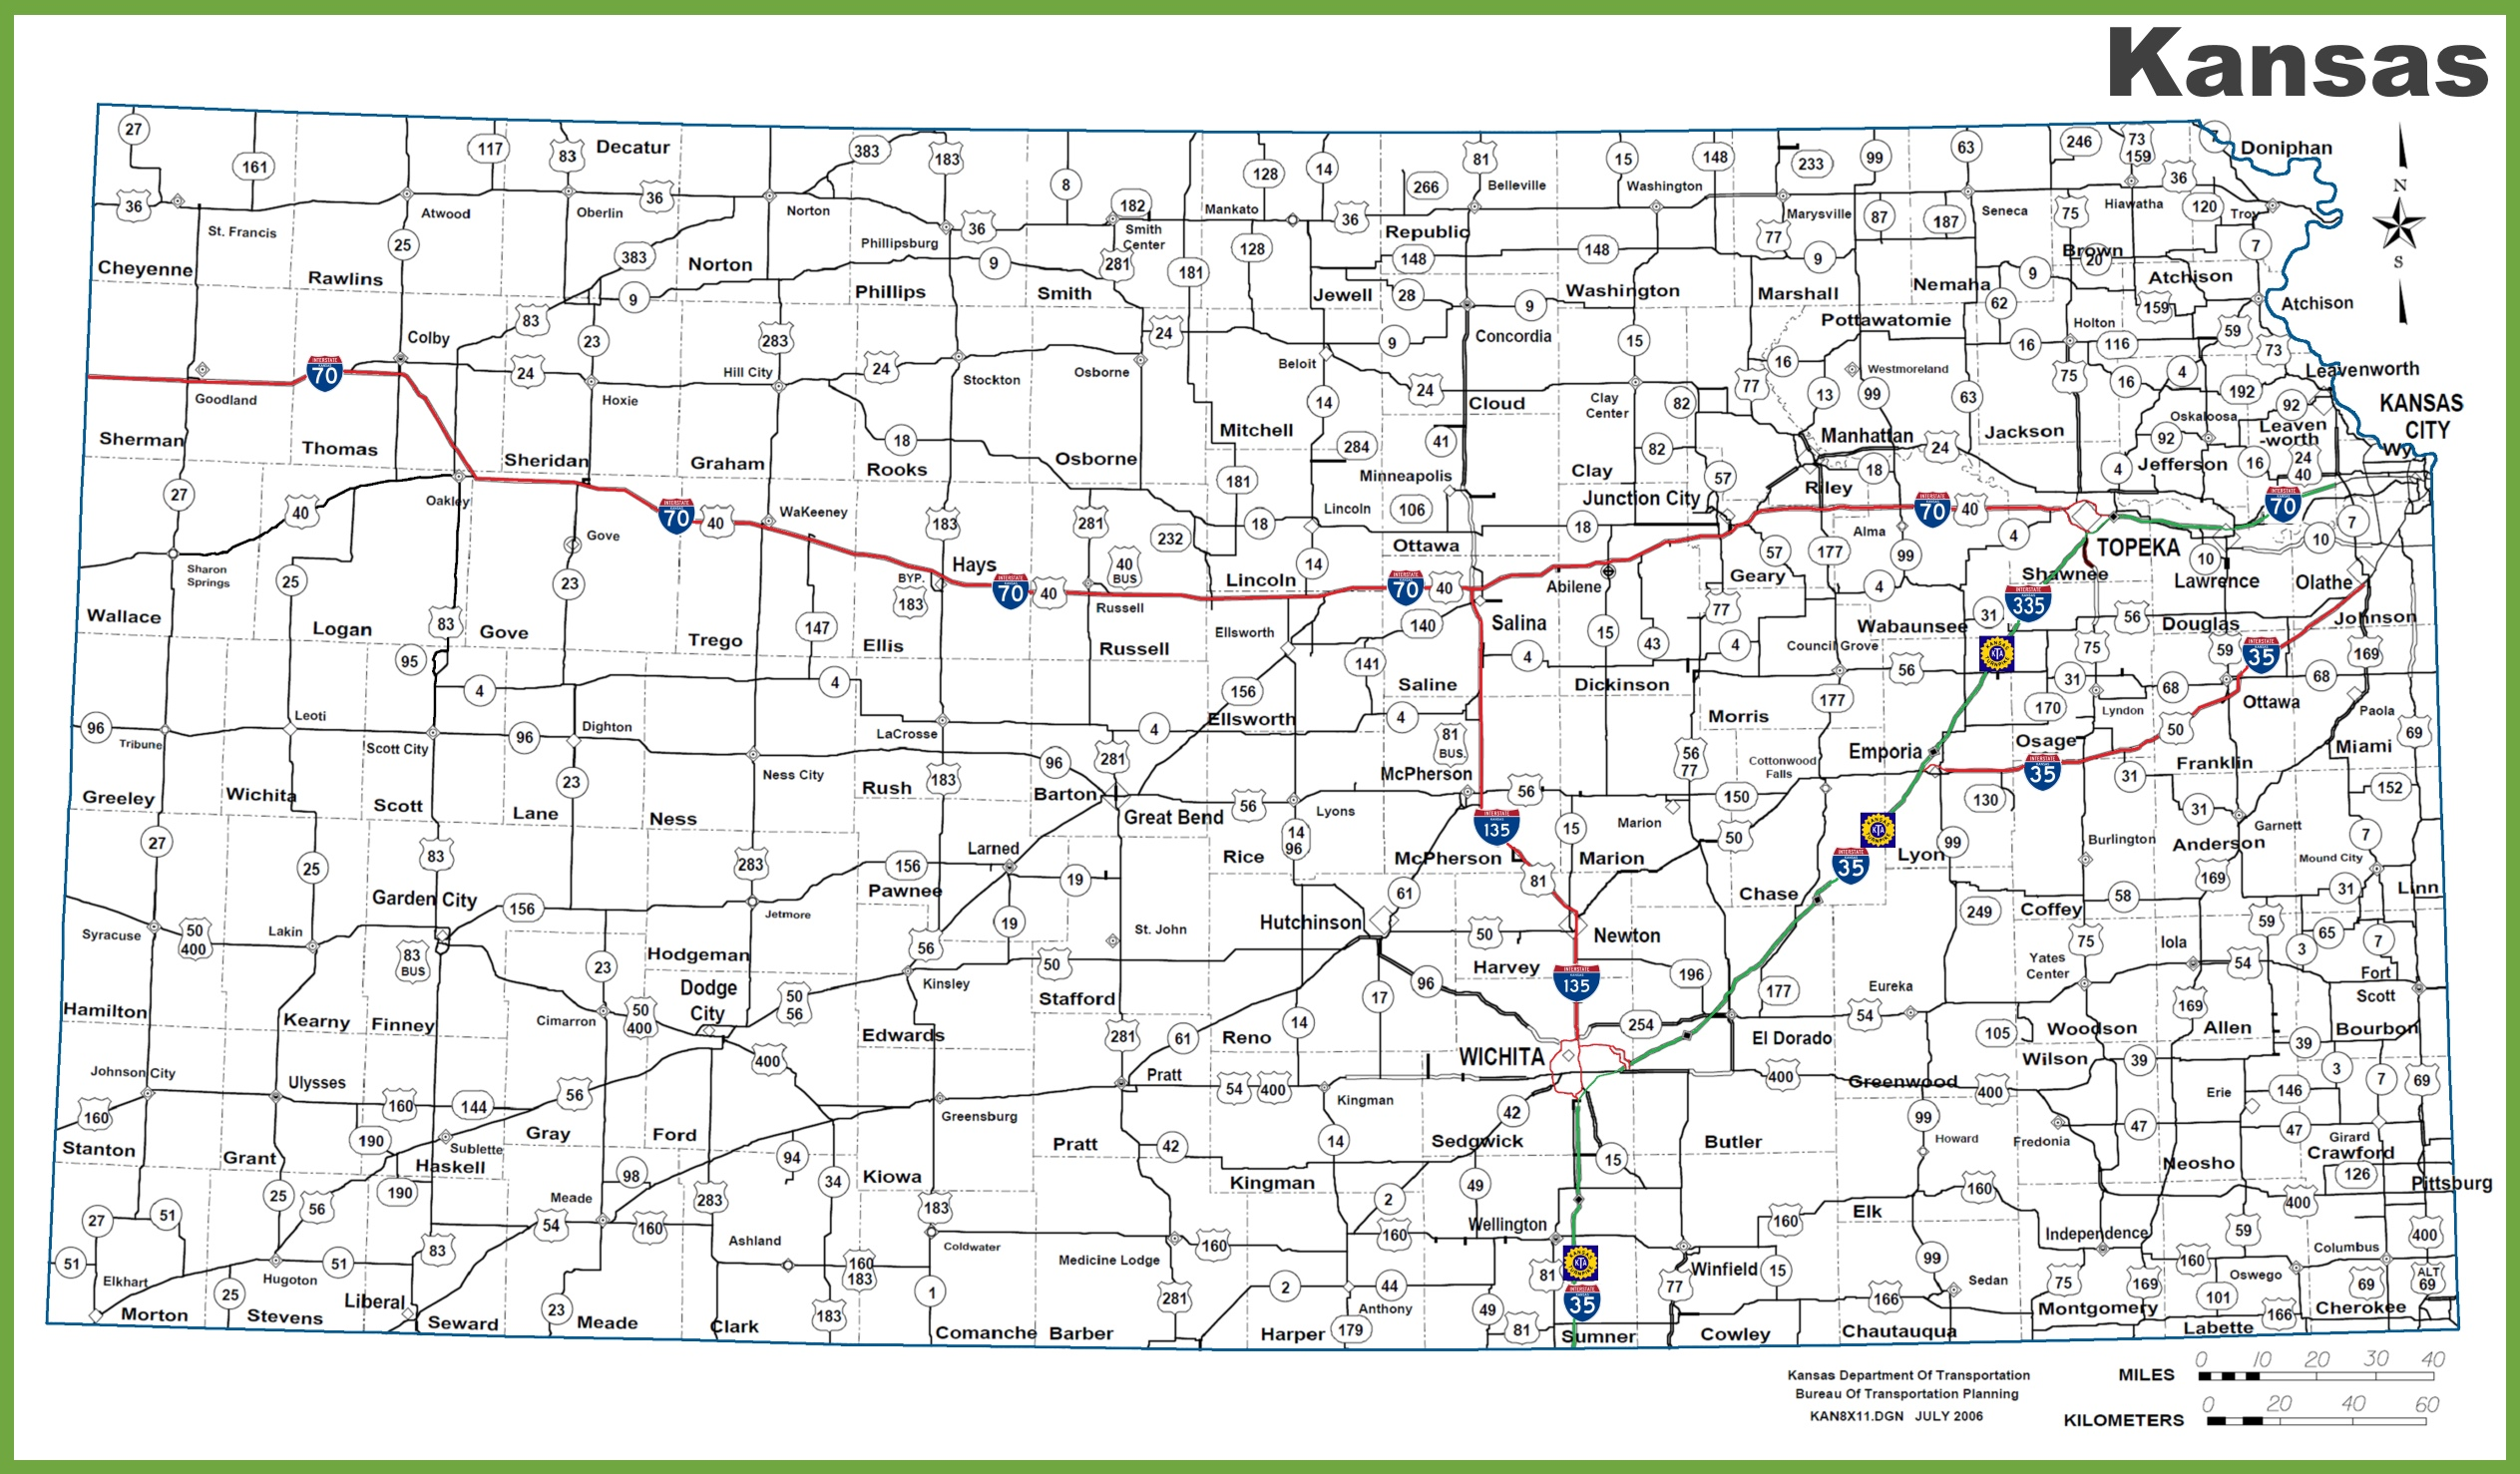 Kansas Road Map - Road map of kansas